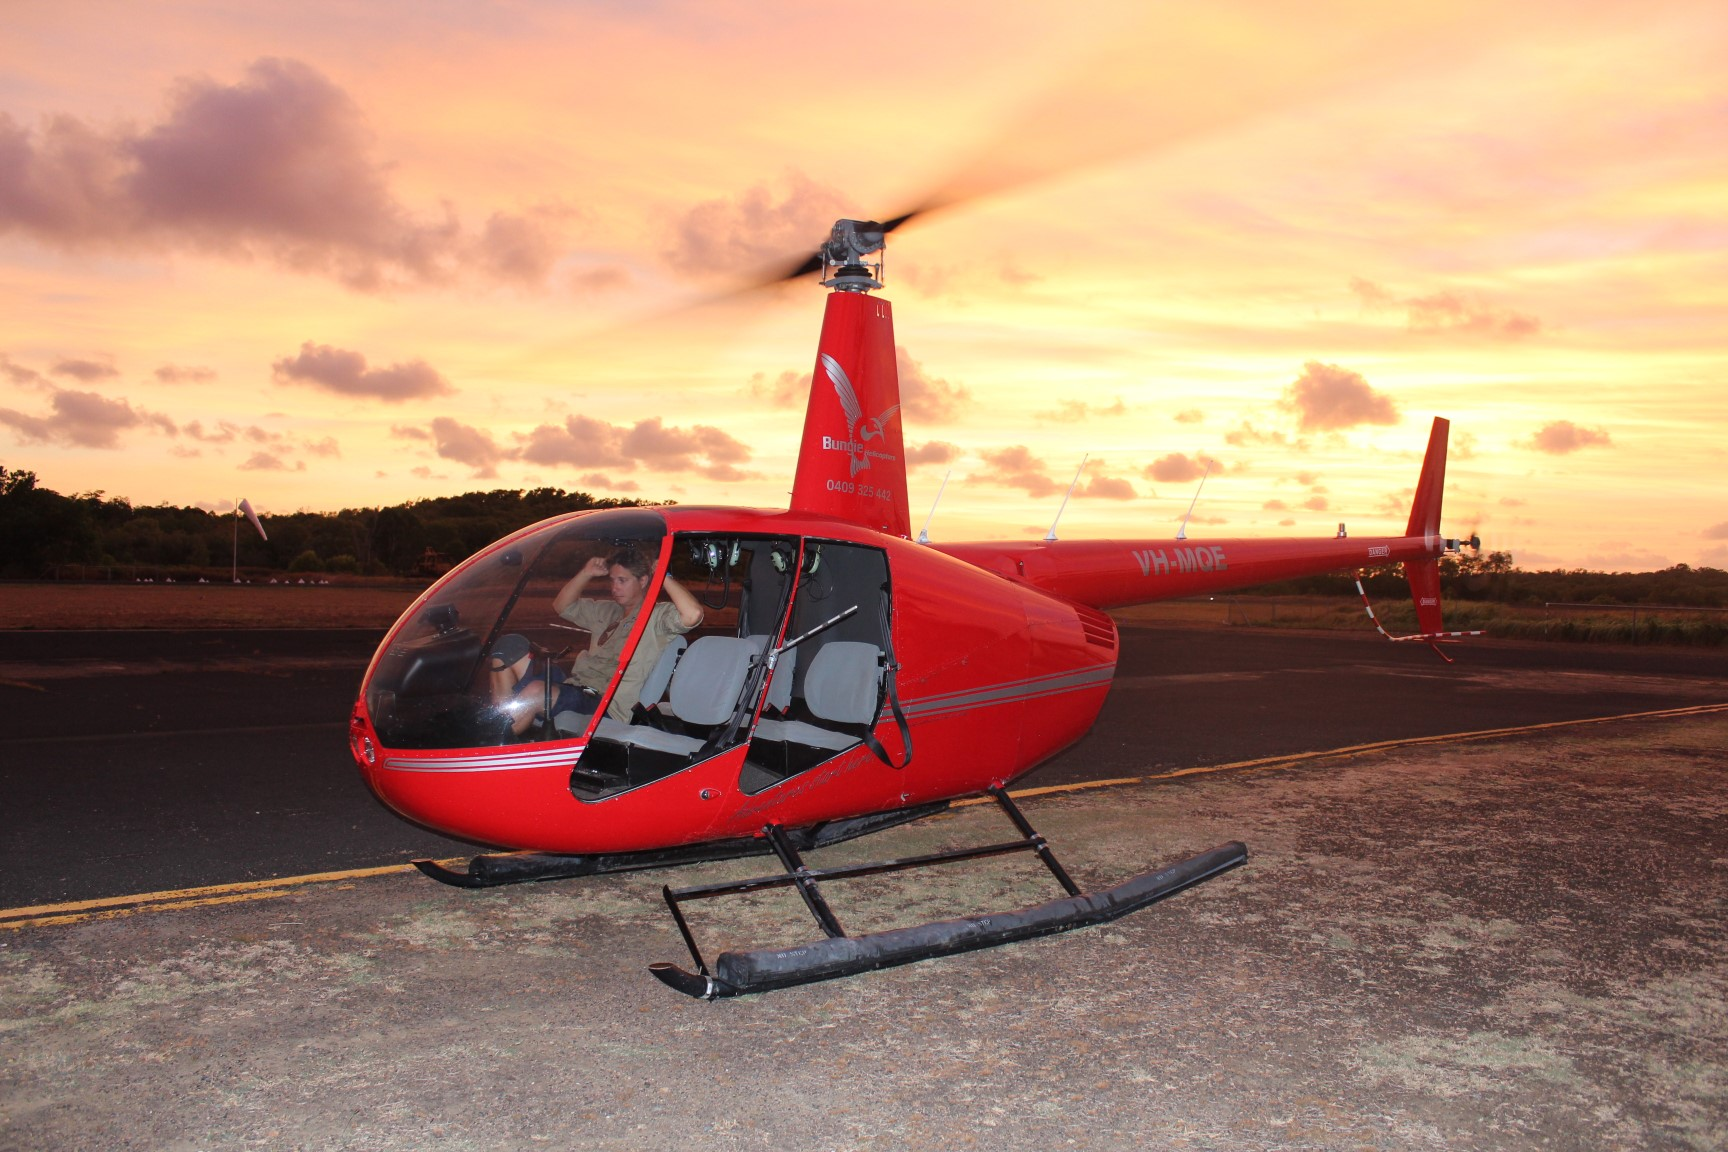 cape york helicopters with Ken Shut Down on Historic Robin Hill In Cape Neddick 1362283 further Geelong additionally Top 10 Mysterious Lost Worlds Species On Earth 166 as well Emirates R s Services Cairo also Helicopter Tour Rides.